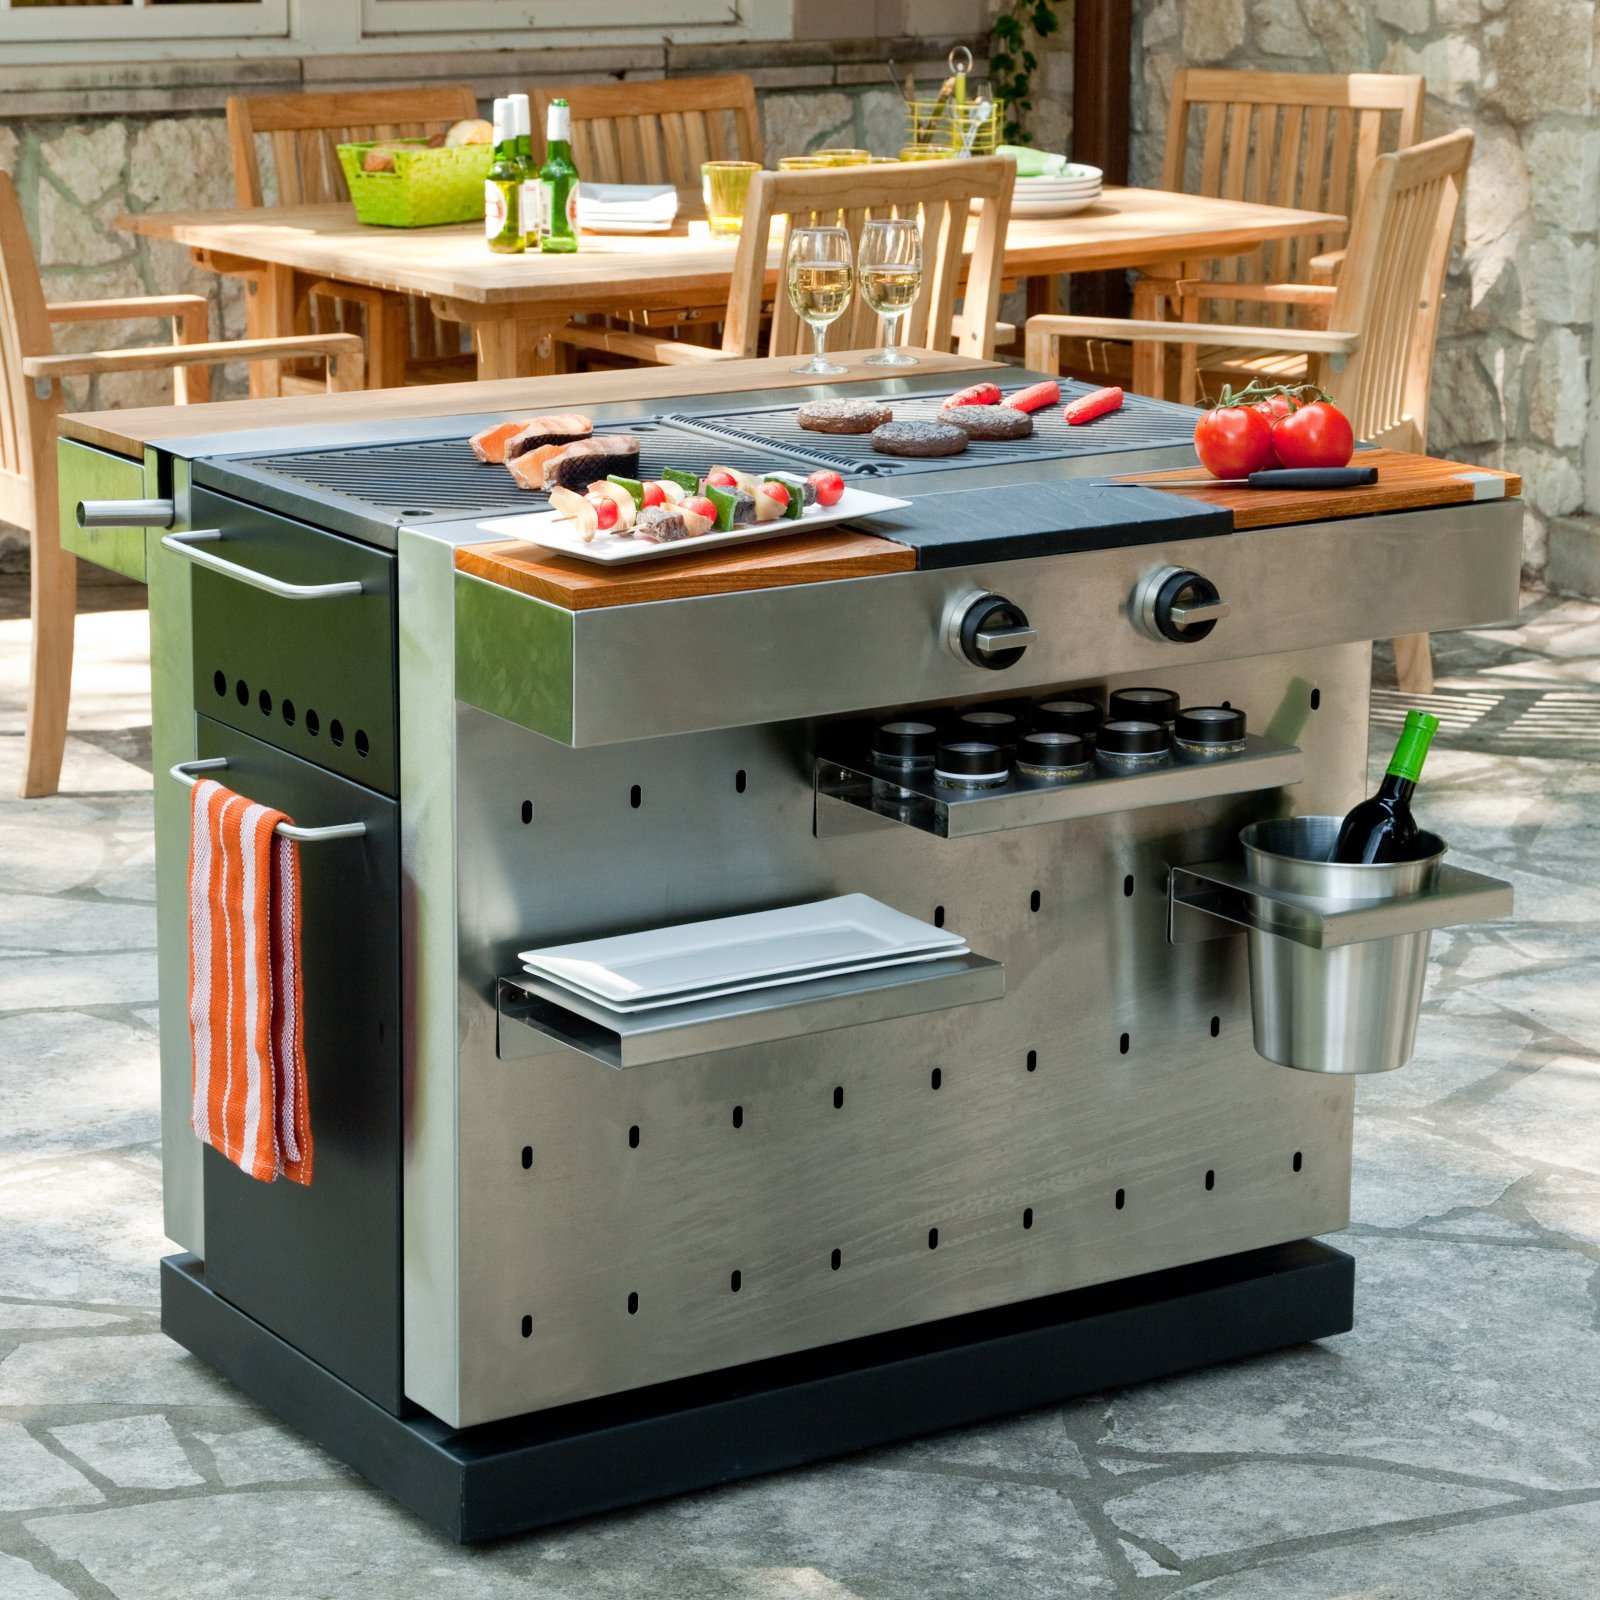 finally a modern grill  fuego  grill  grant bowencom -  and a modular accessory system that uses pegs to attach to theperforated stainless steel exterior simply put it redefines what a grillcan be via